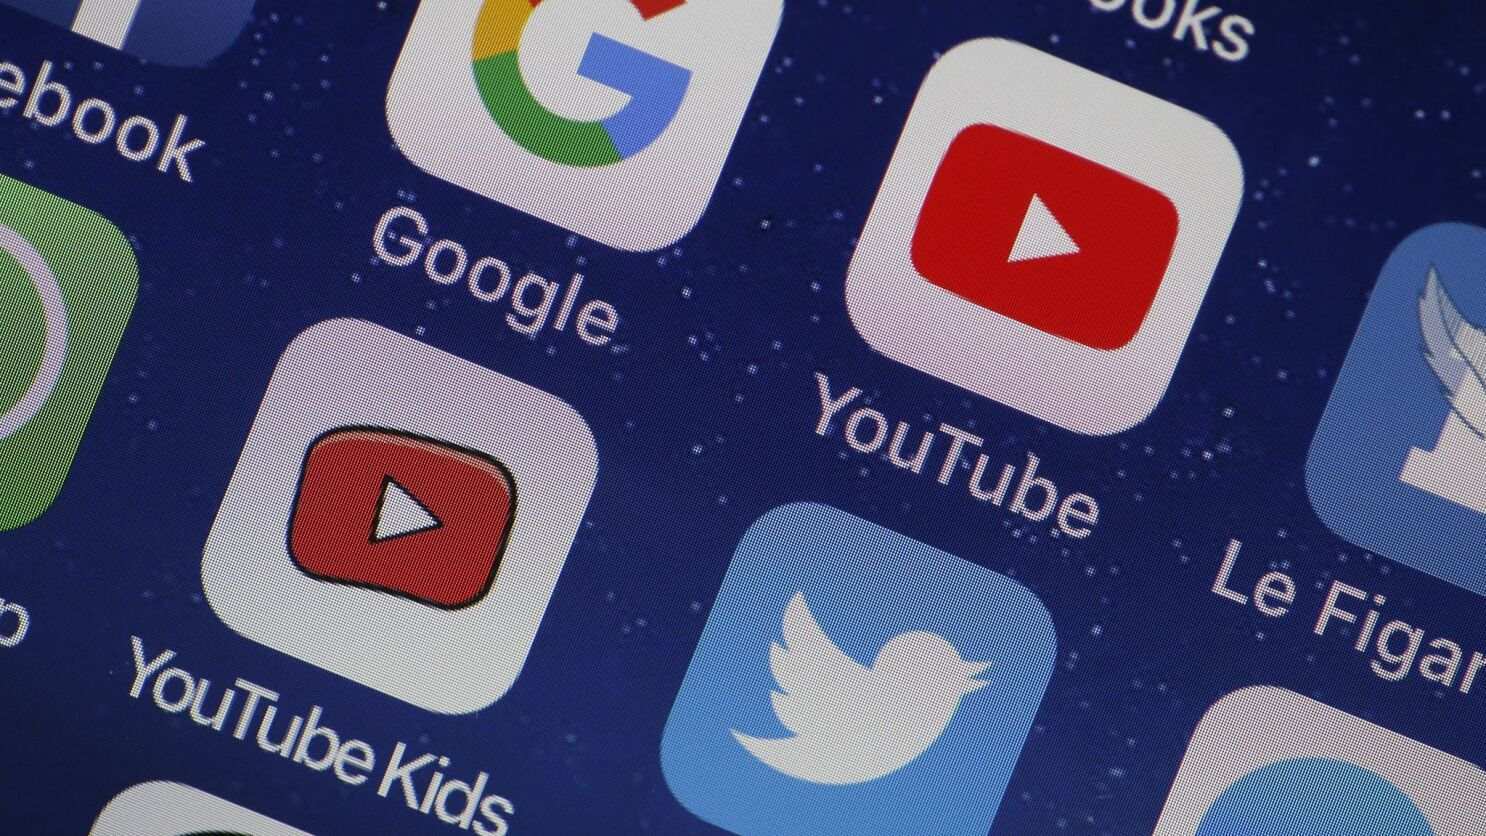 Europe is right. Social media titans should pay up to use creative content